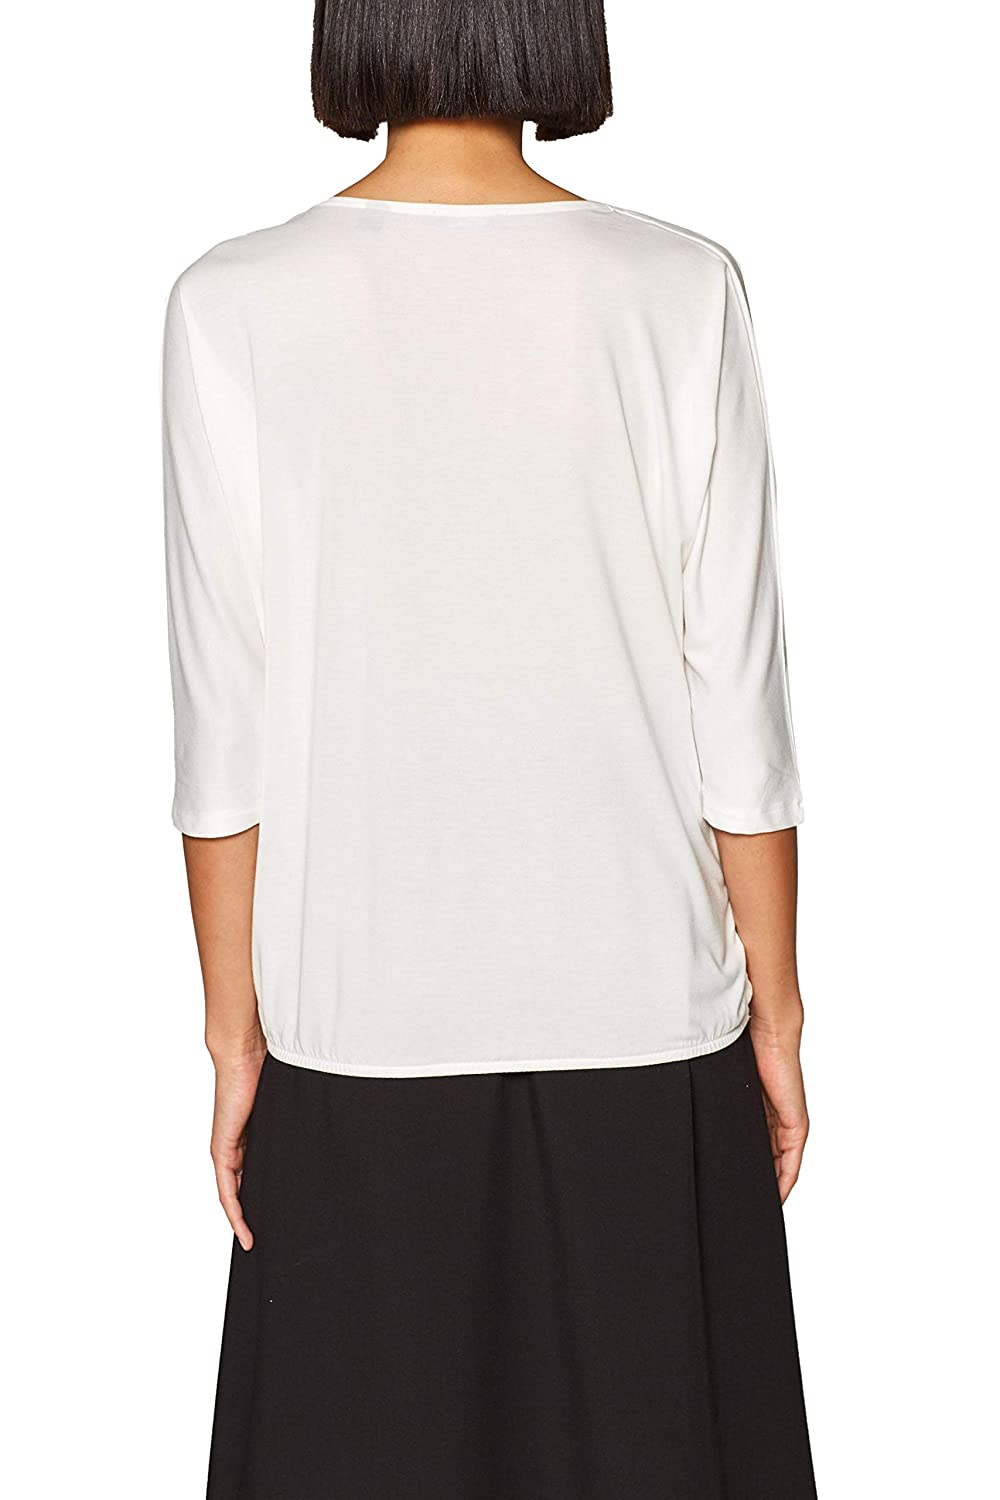 ESPRIT Collection T-Shirt Donna